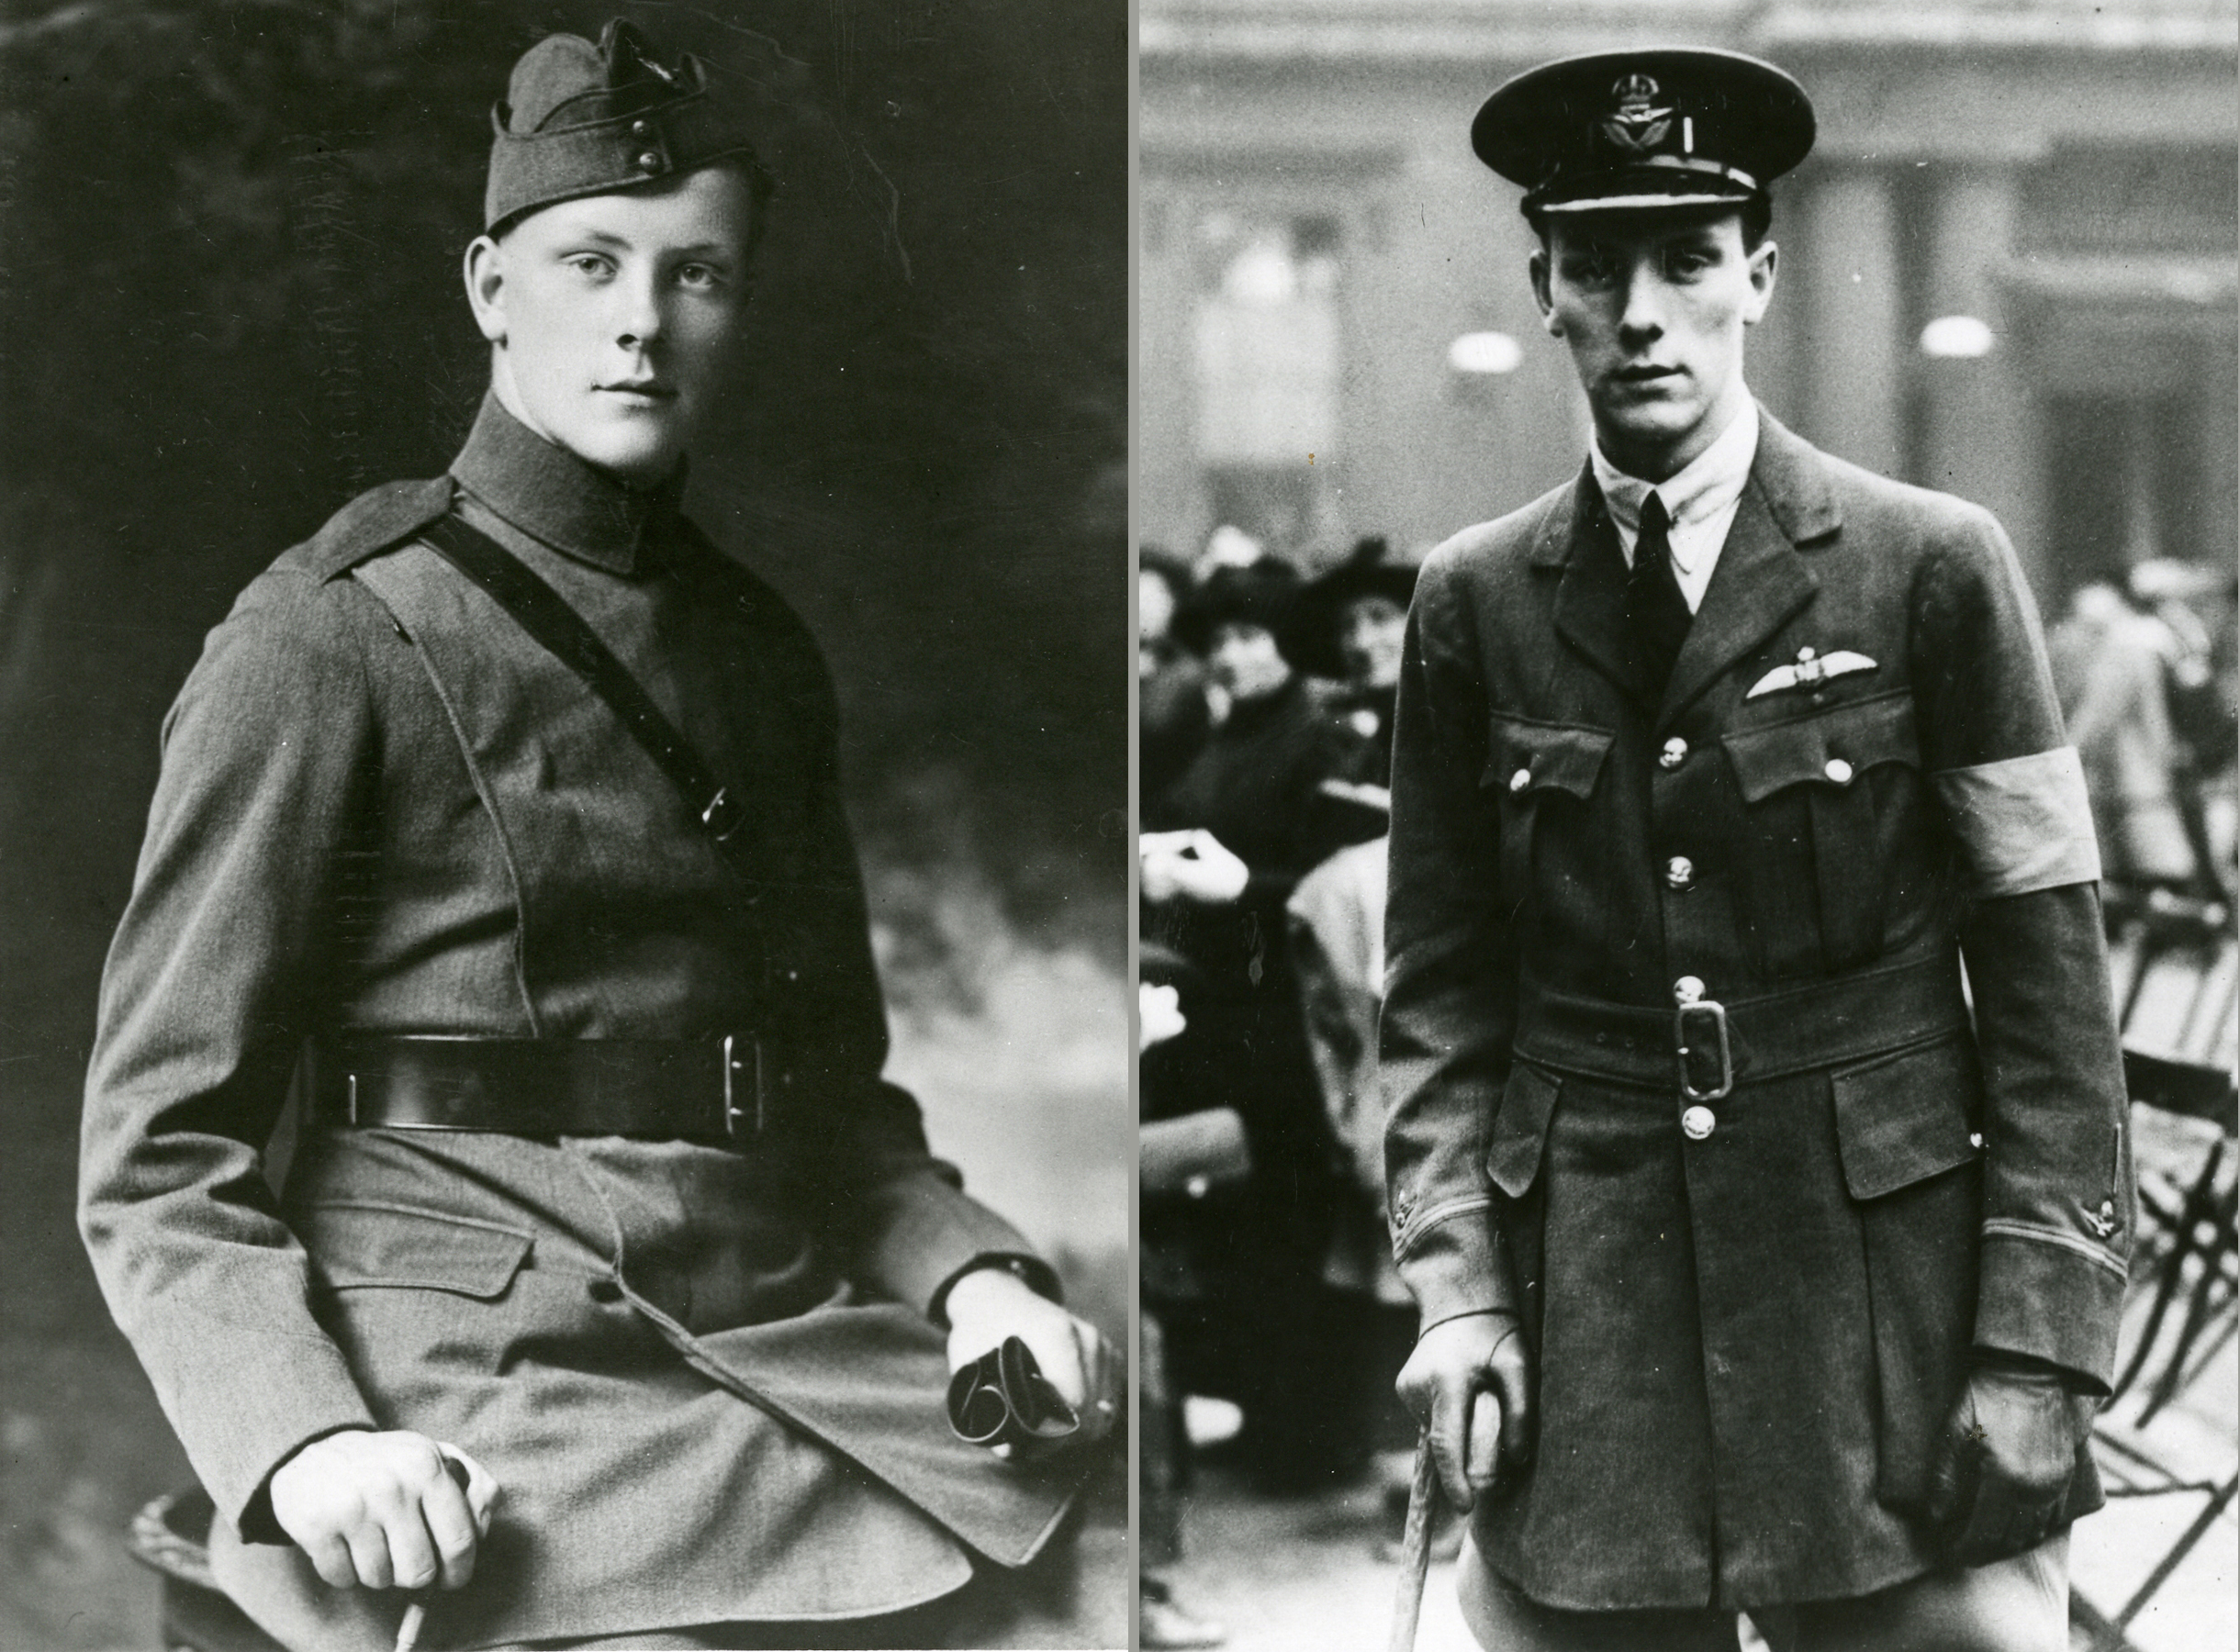 ABOVE LEFT: Alan Arnett McLeod at the time of qualifying as a pilot and a commissioned Temporary Second Lieutenant at age 18 in 1917. (imperial war museum, q67601)  ABOVE RIGHT: McLeod presents a more wan appearance when he arrives at Buckingham Palace to receive the VC on September 4, 1918. He proved too weak to accept a luncheon invitation with King George V at Windsor Castle afterward and was soon on his way home. (rcaf)